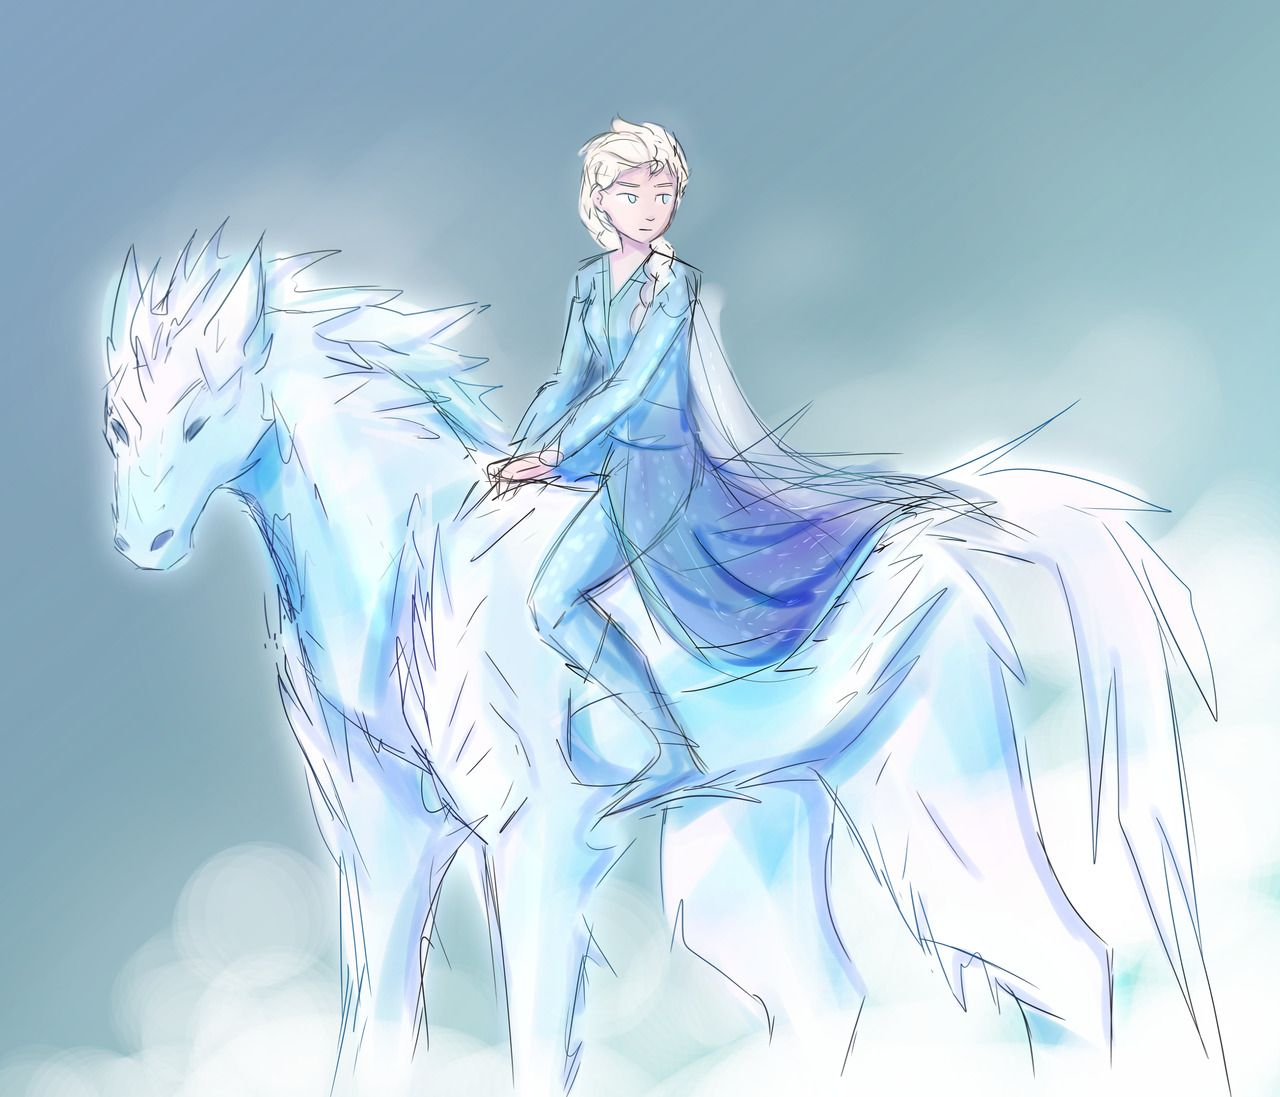 Xyxyz1112 If Elsa Used Her Powers On The Nokk Could She Have A Badass Ice Horse To Ride Into Battle Frozen Art Disney Horses Disney Frozen Elsa